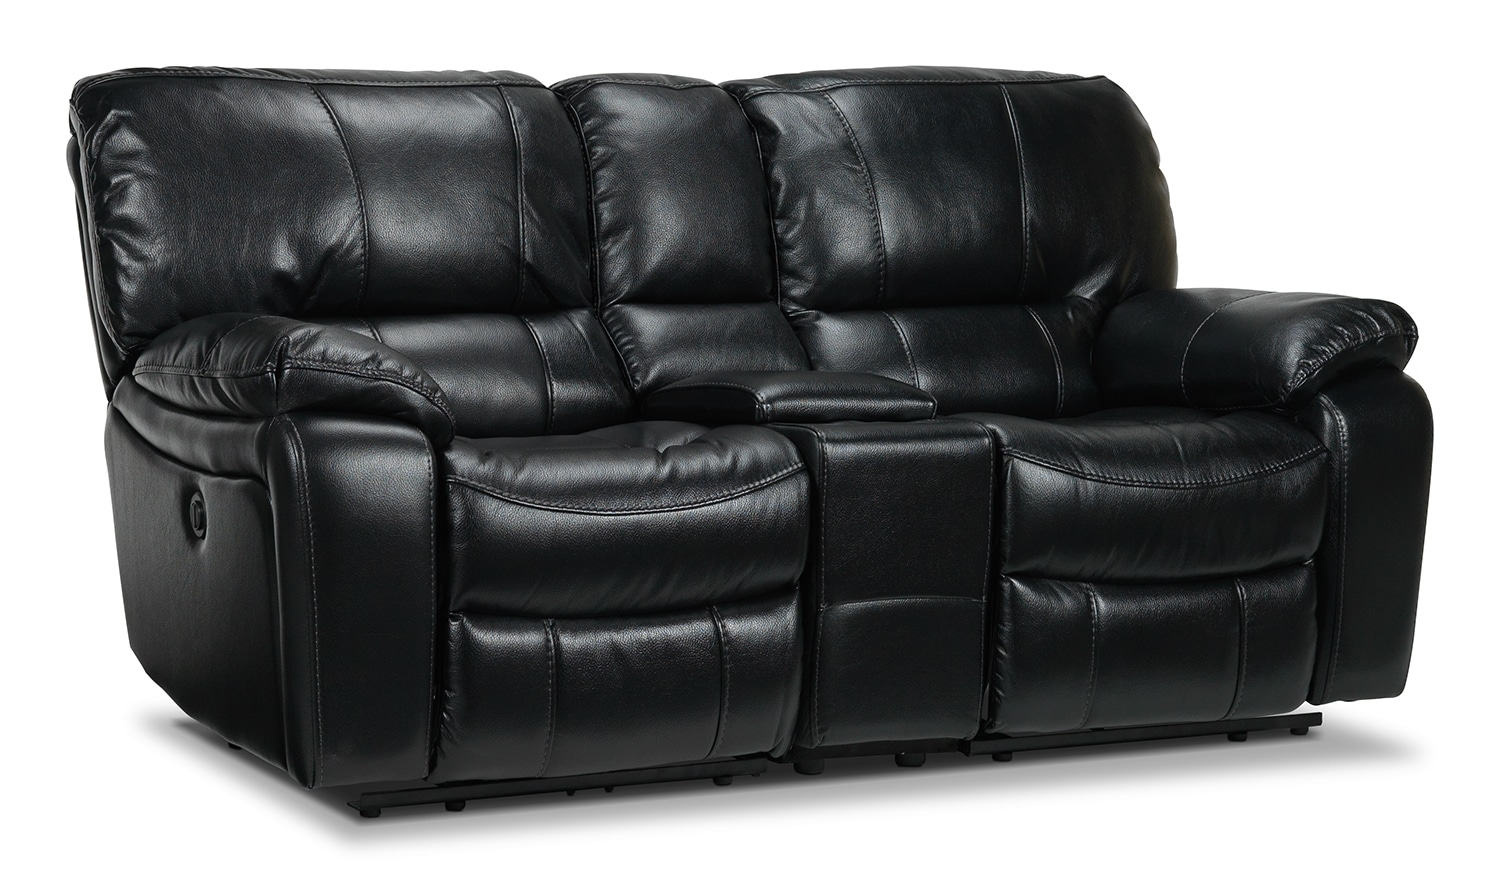 Living Room Furniture - Santorini Power Reclining Loveseat - Black